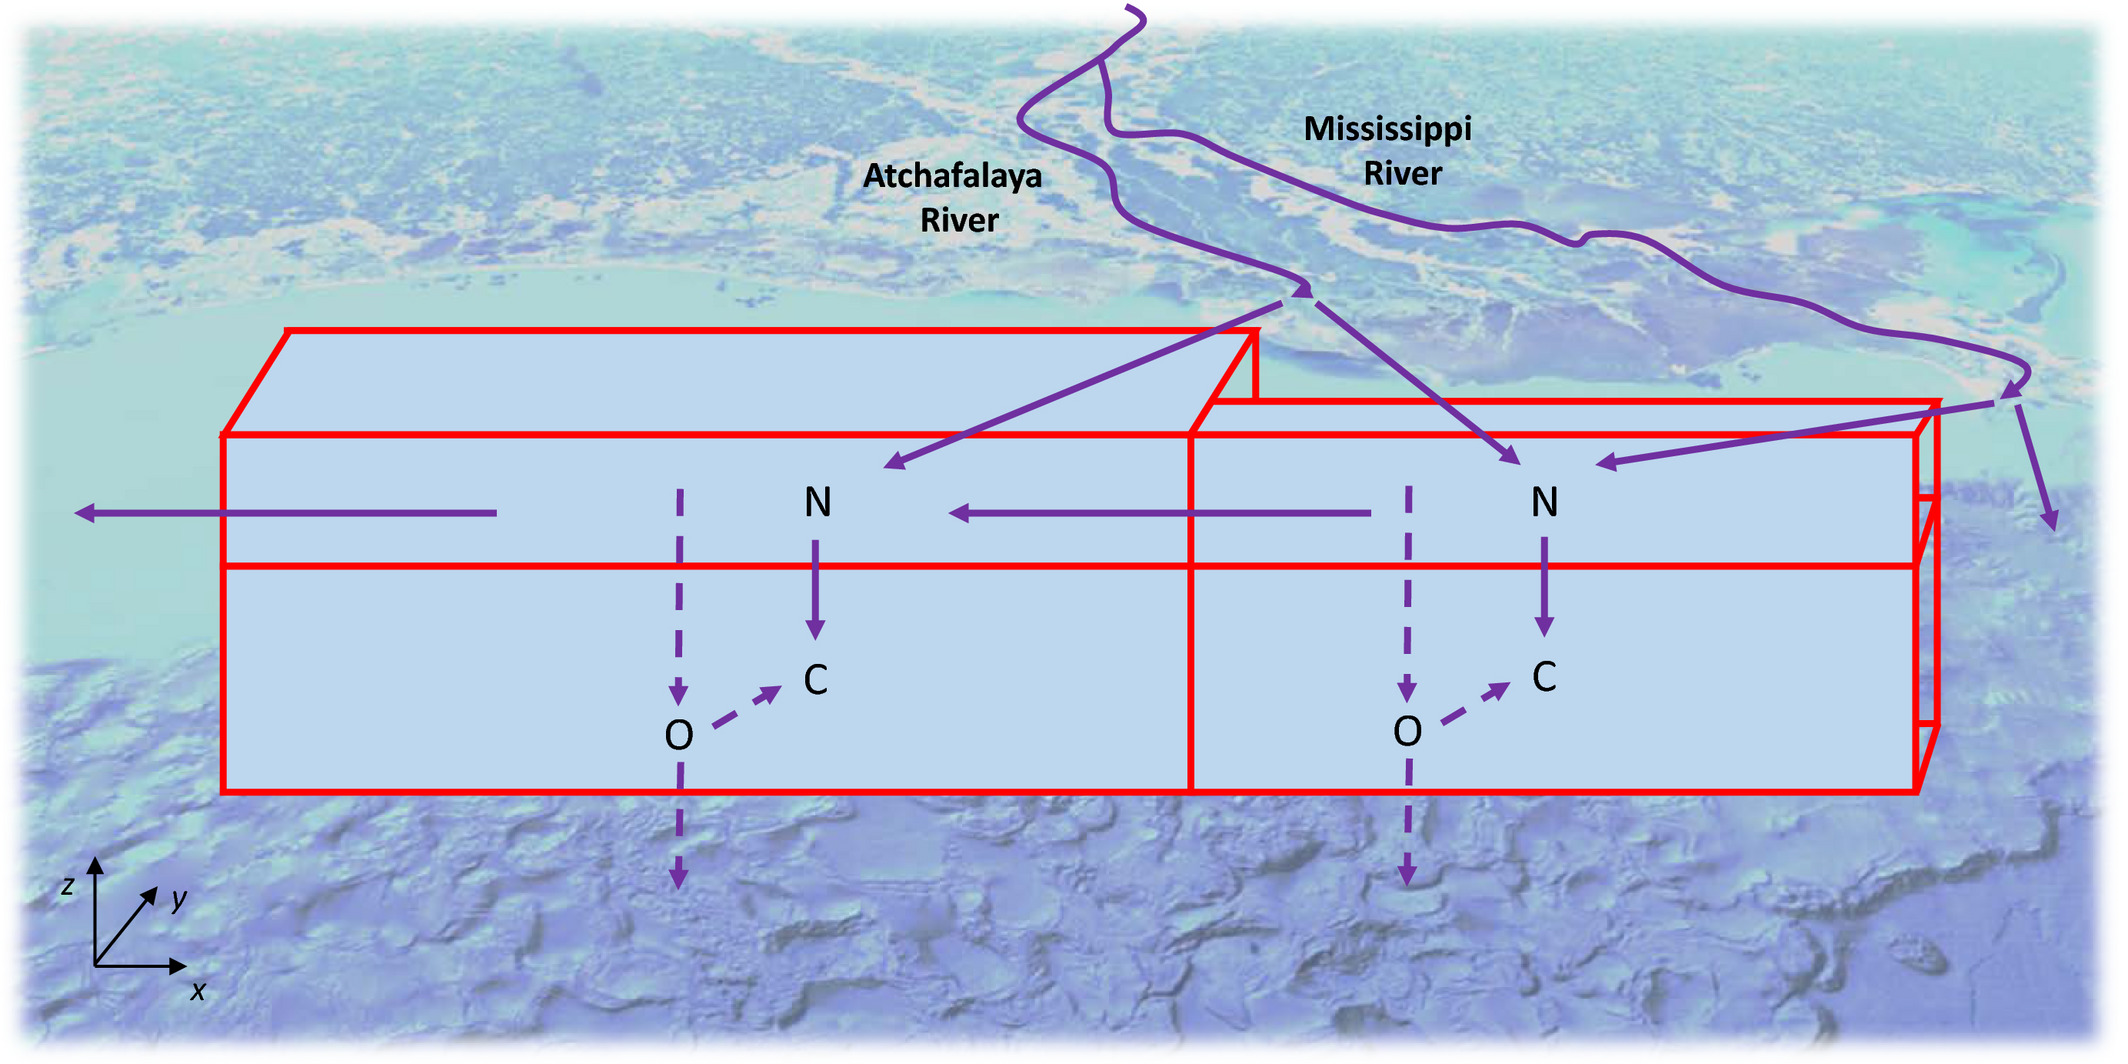 Model Combines Reduced Nutrients, Increased Temps and Freshwater Discharges for Gulf of Mexico Hypoxia Scenarios